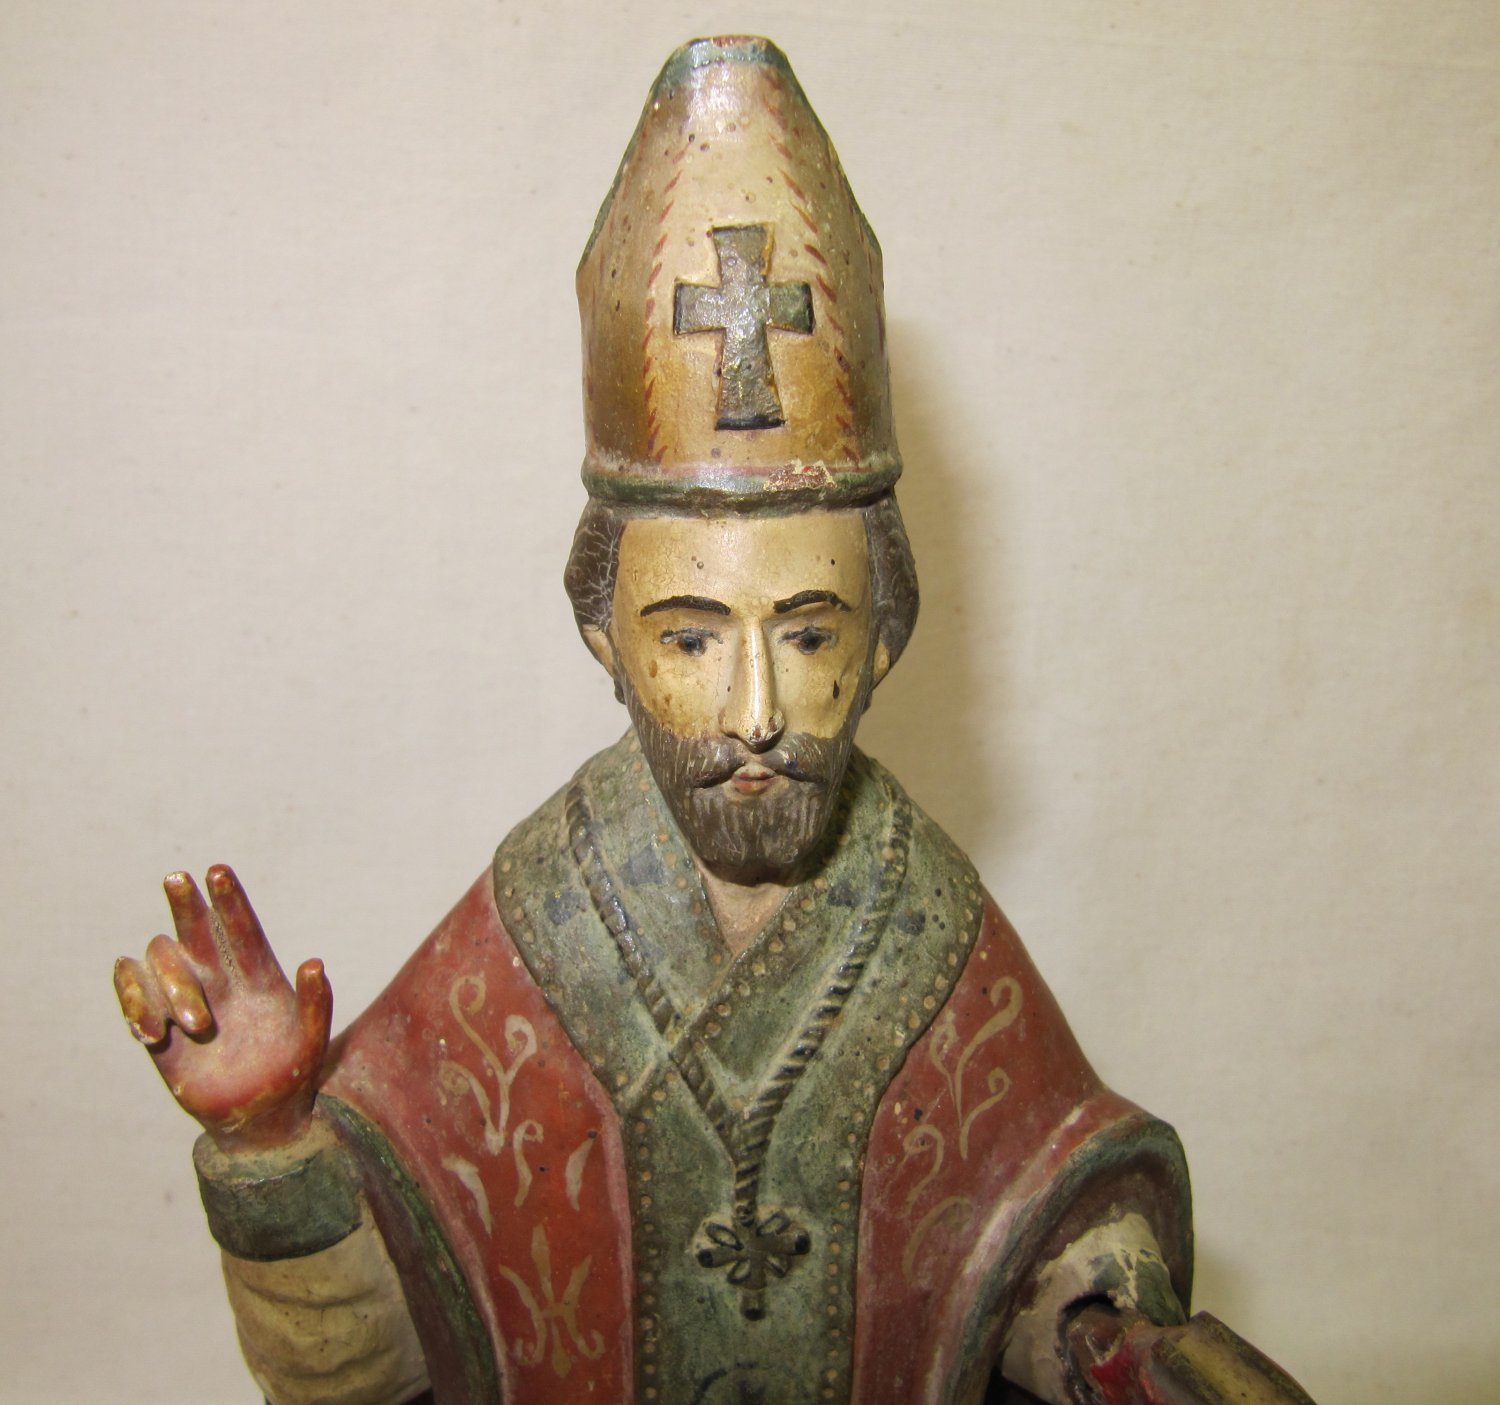 Peruvian Wood Carving Plaster Religious Figure Priest with Bible Painted Antiquity c. 1600s